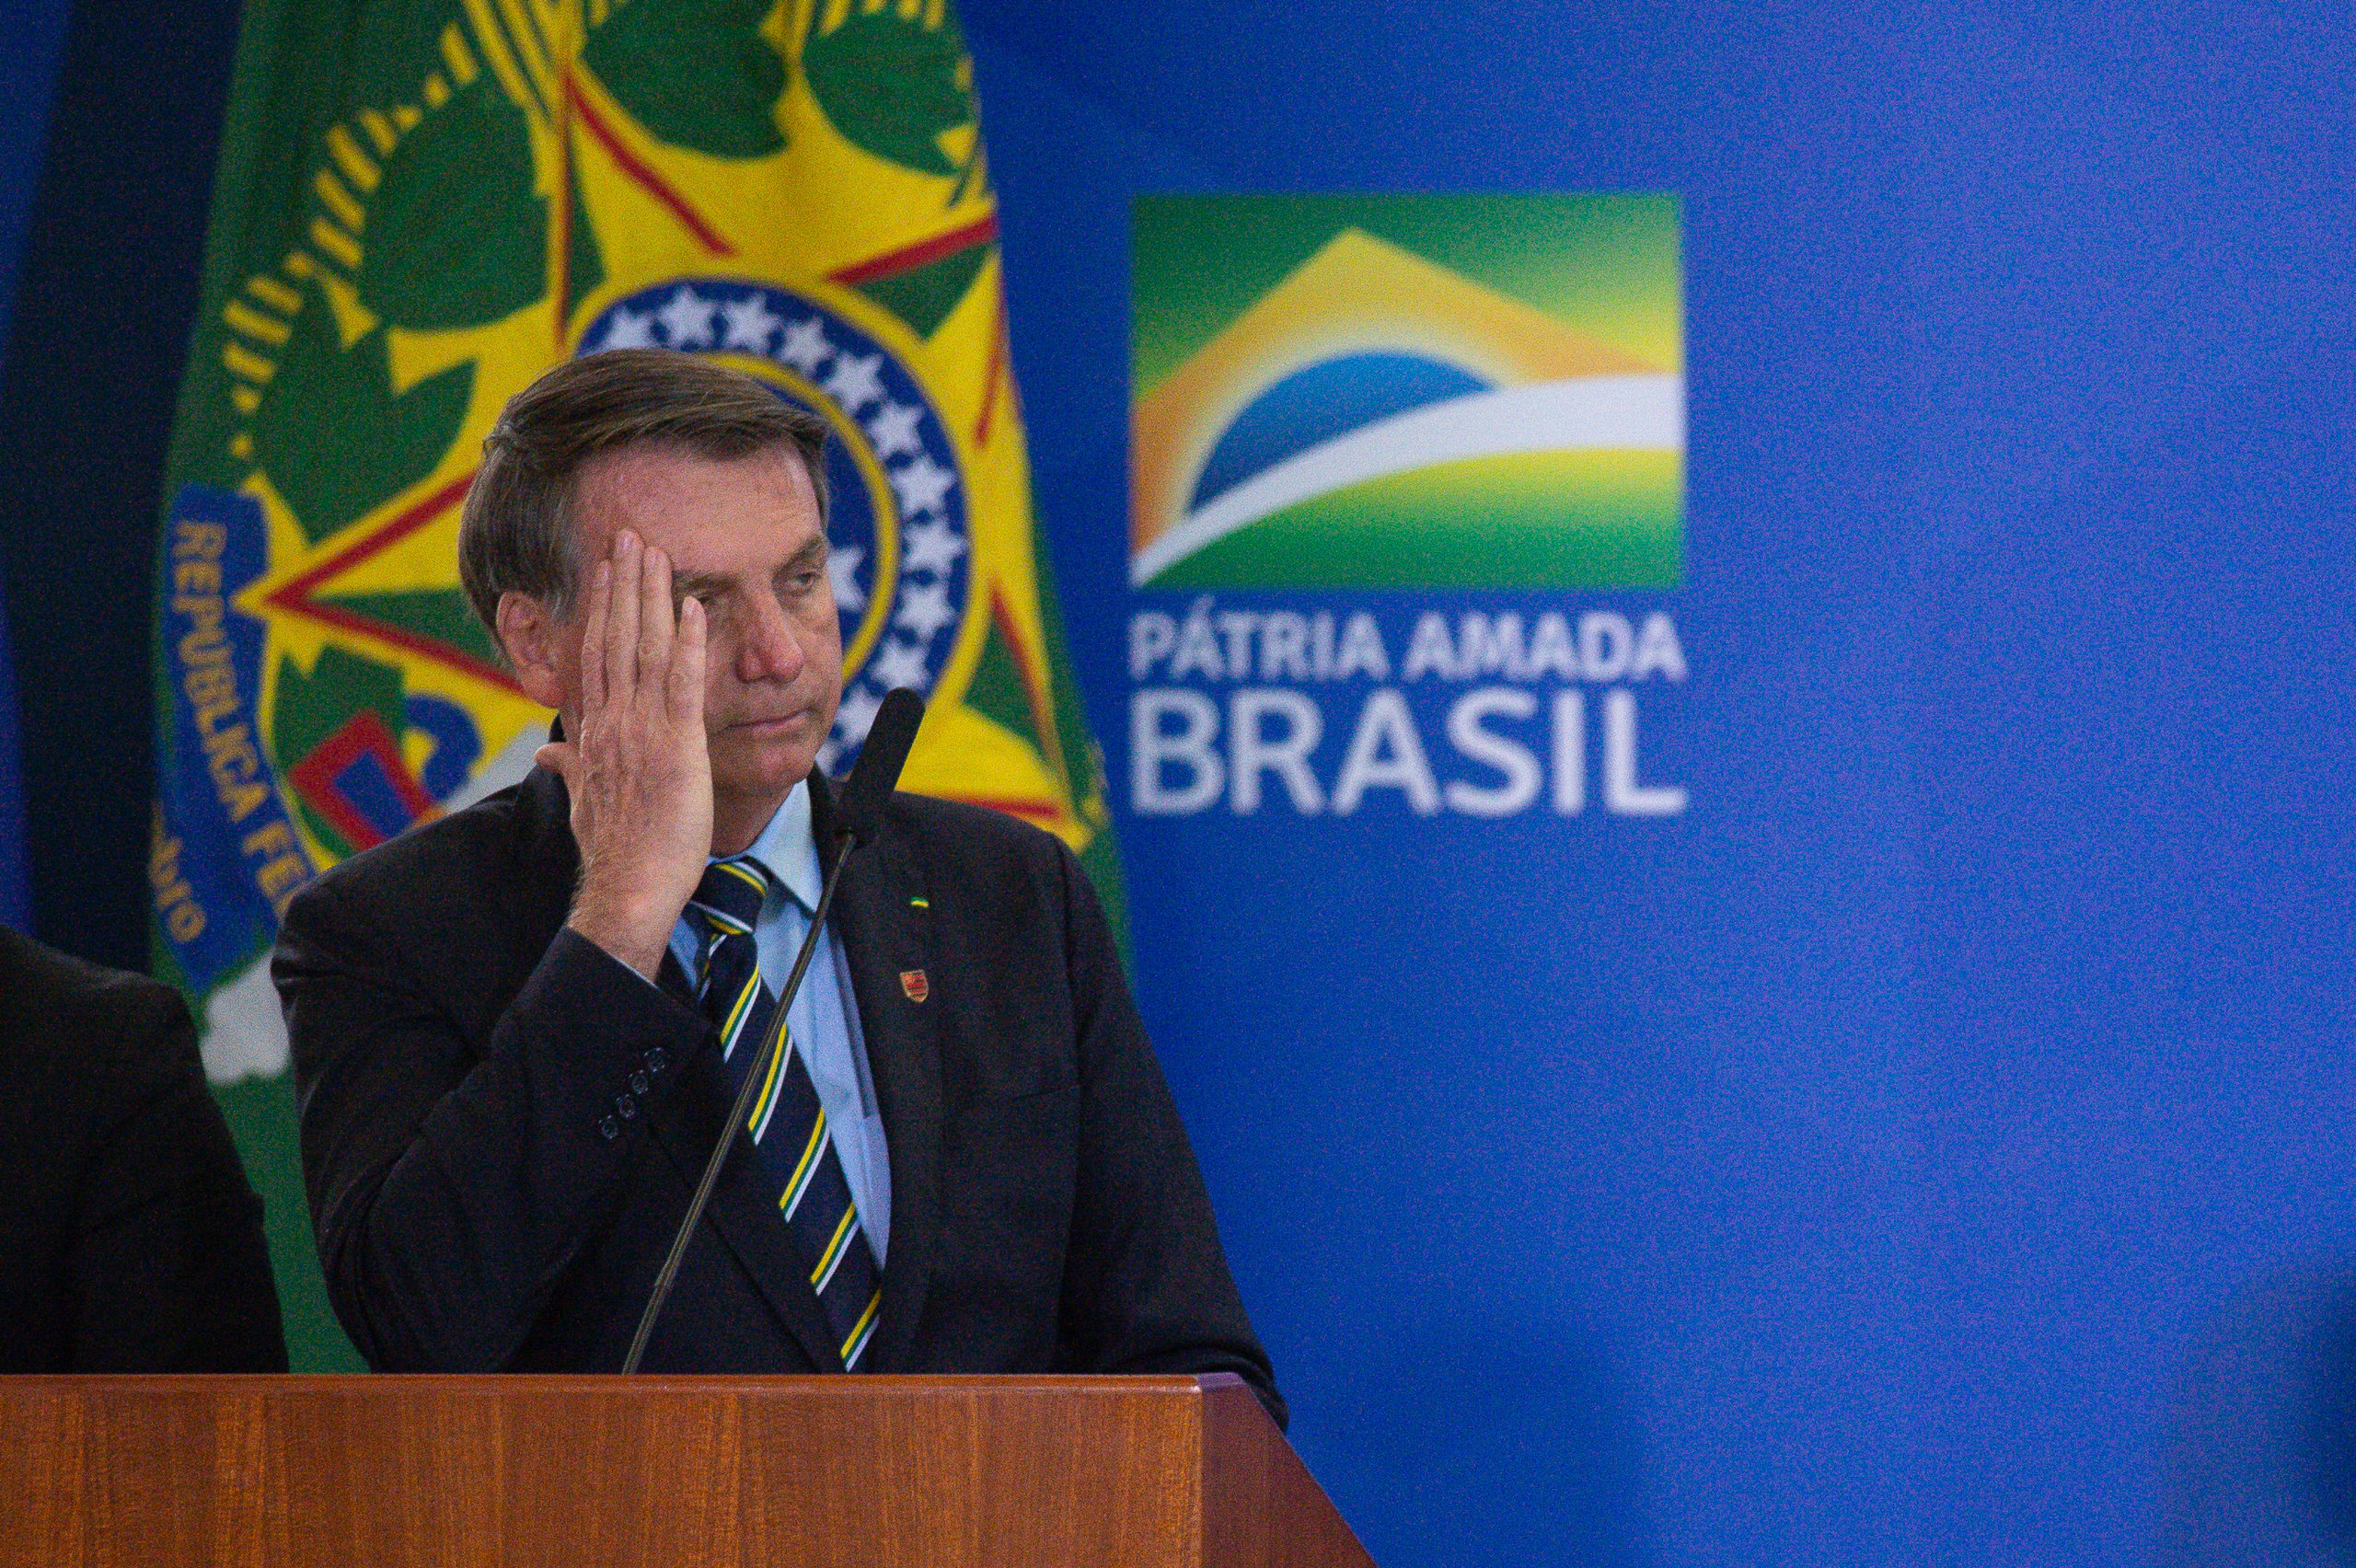 Brazil's Jair Bolsonaro refused to wear a face mask because he thought they were 'too gay'. Now he's got coronavirus